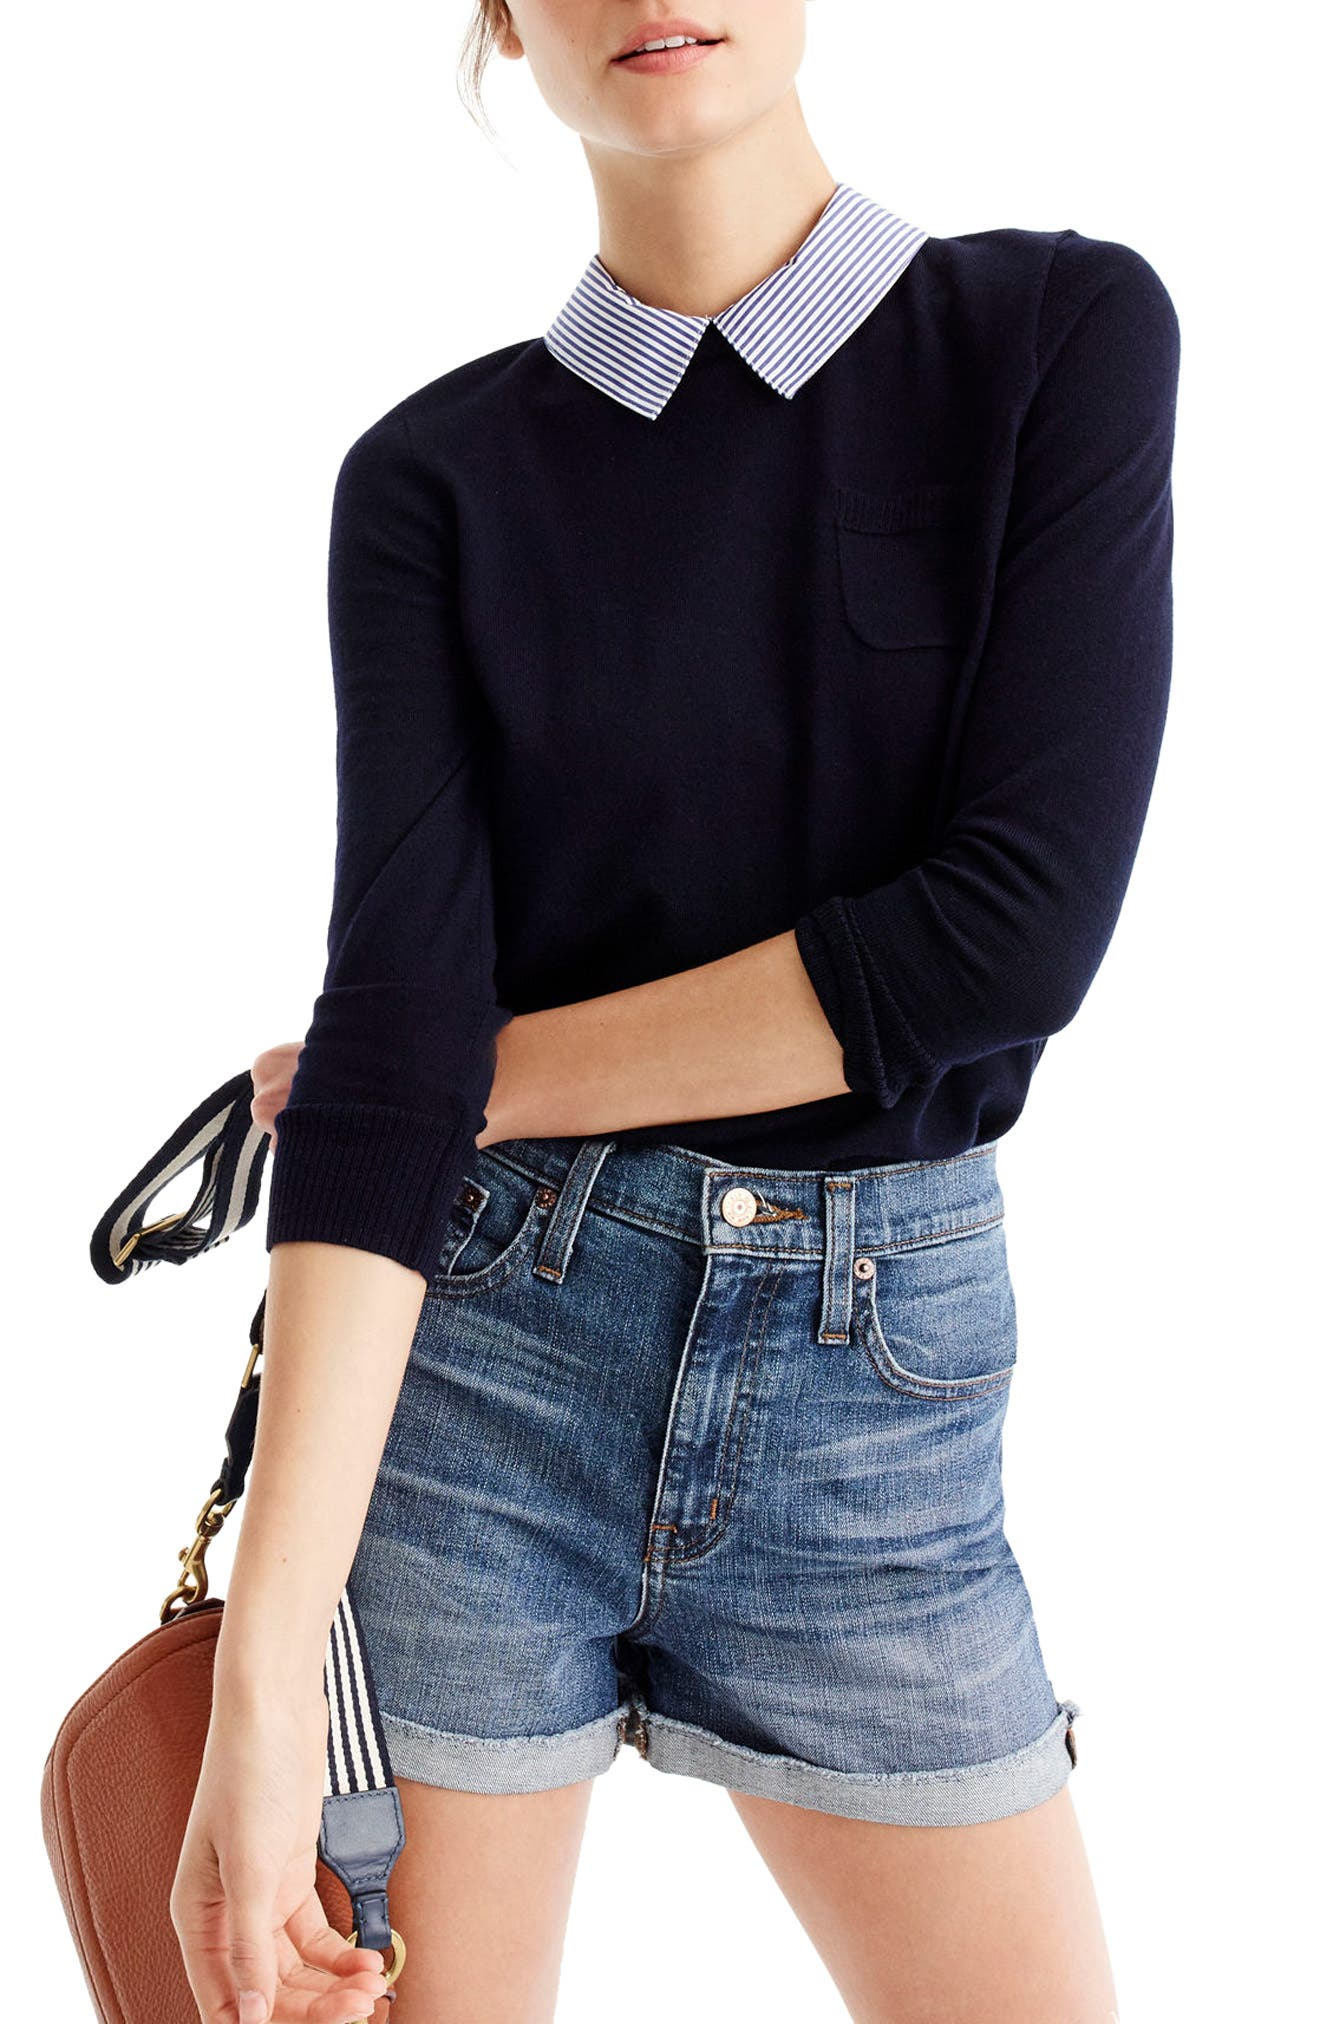 J.Crew Collared Tippi Sweater